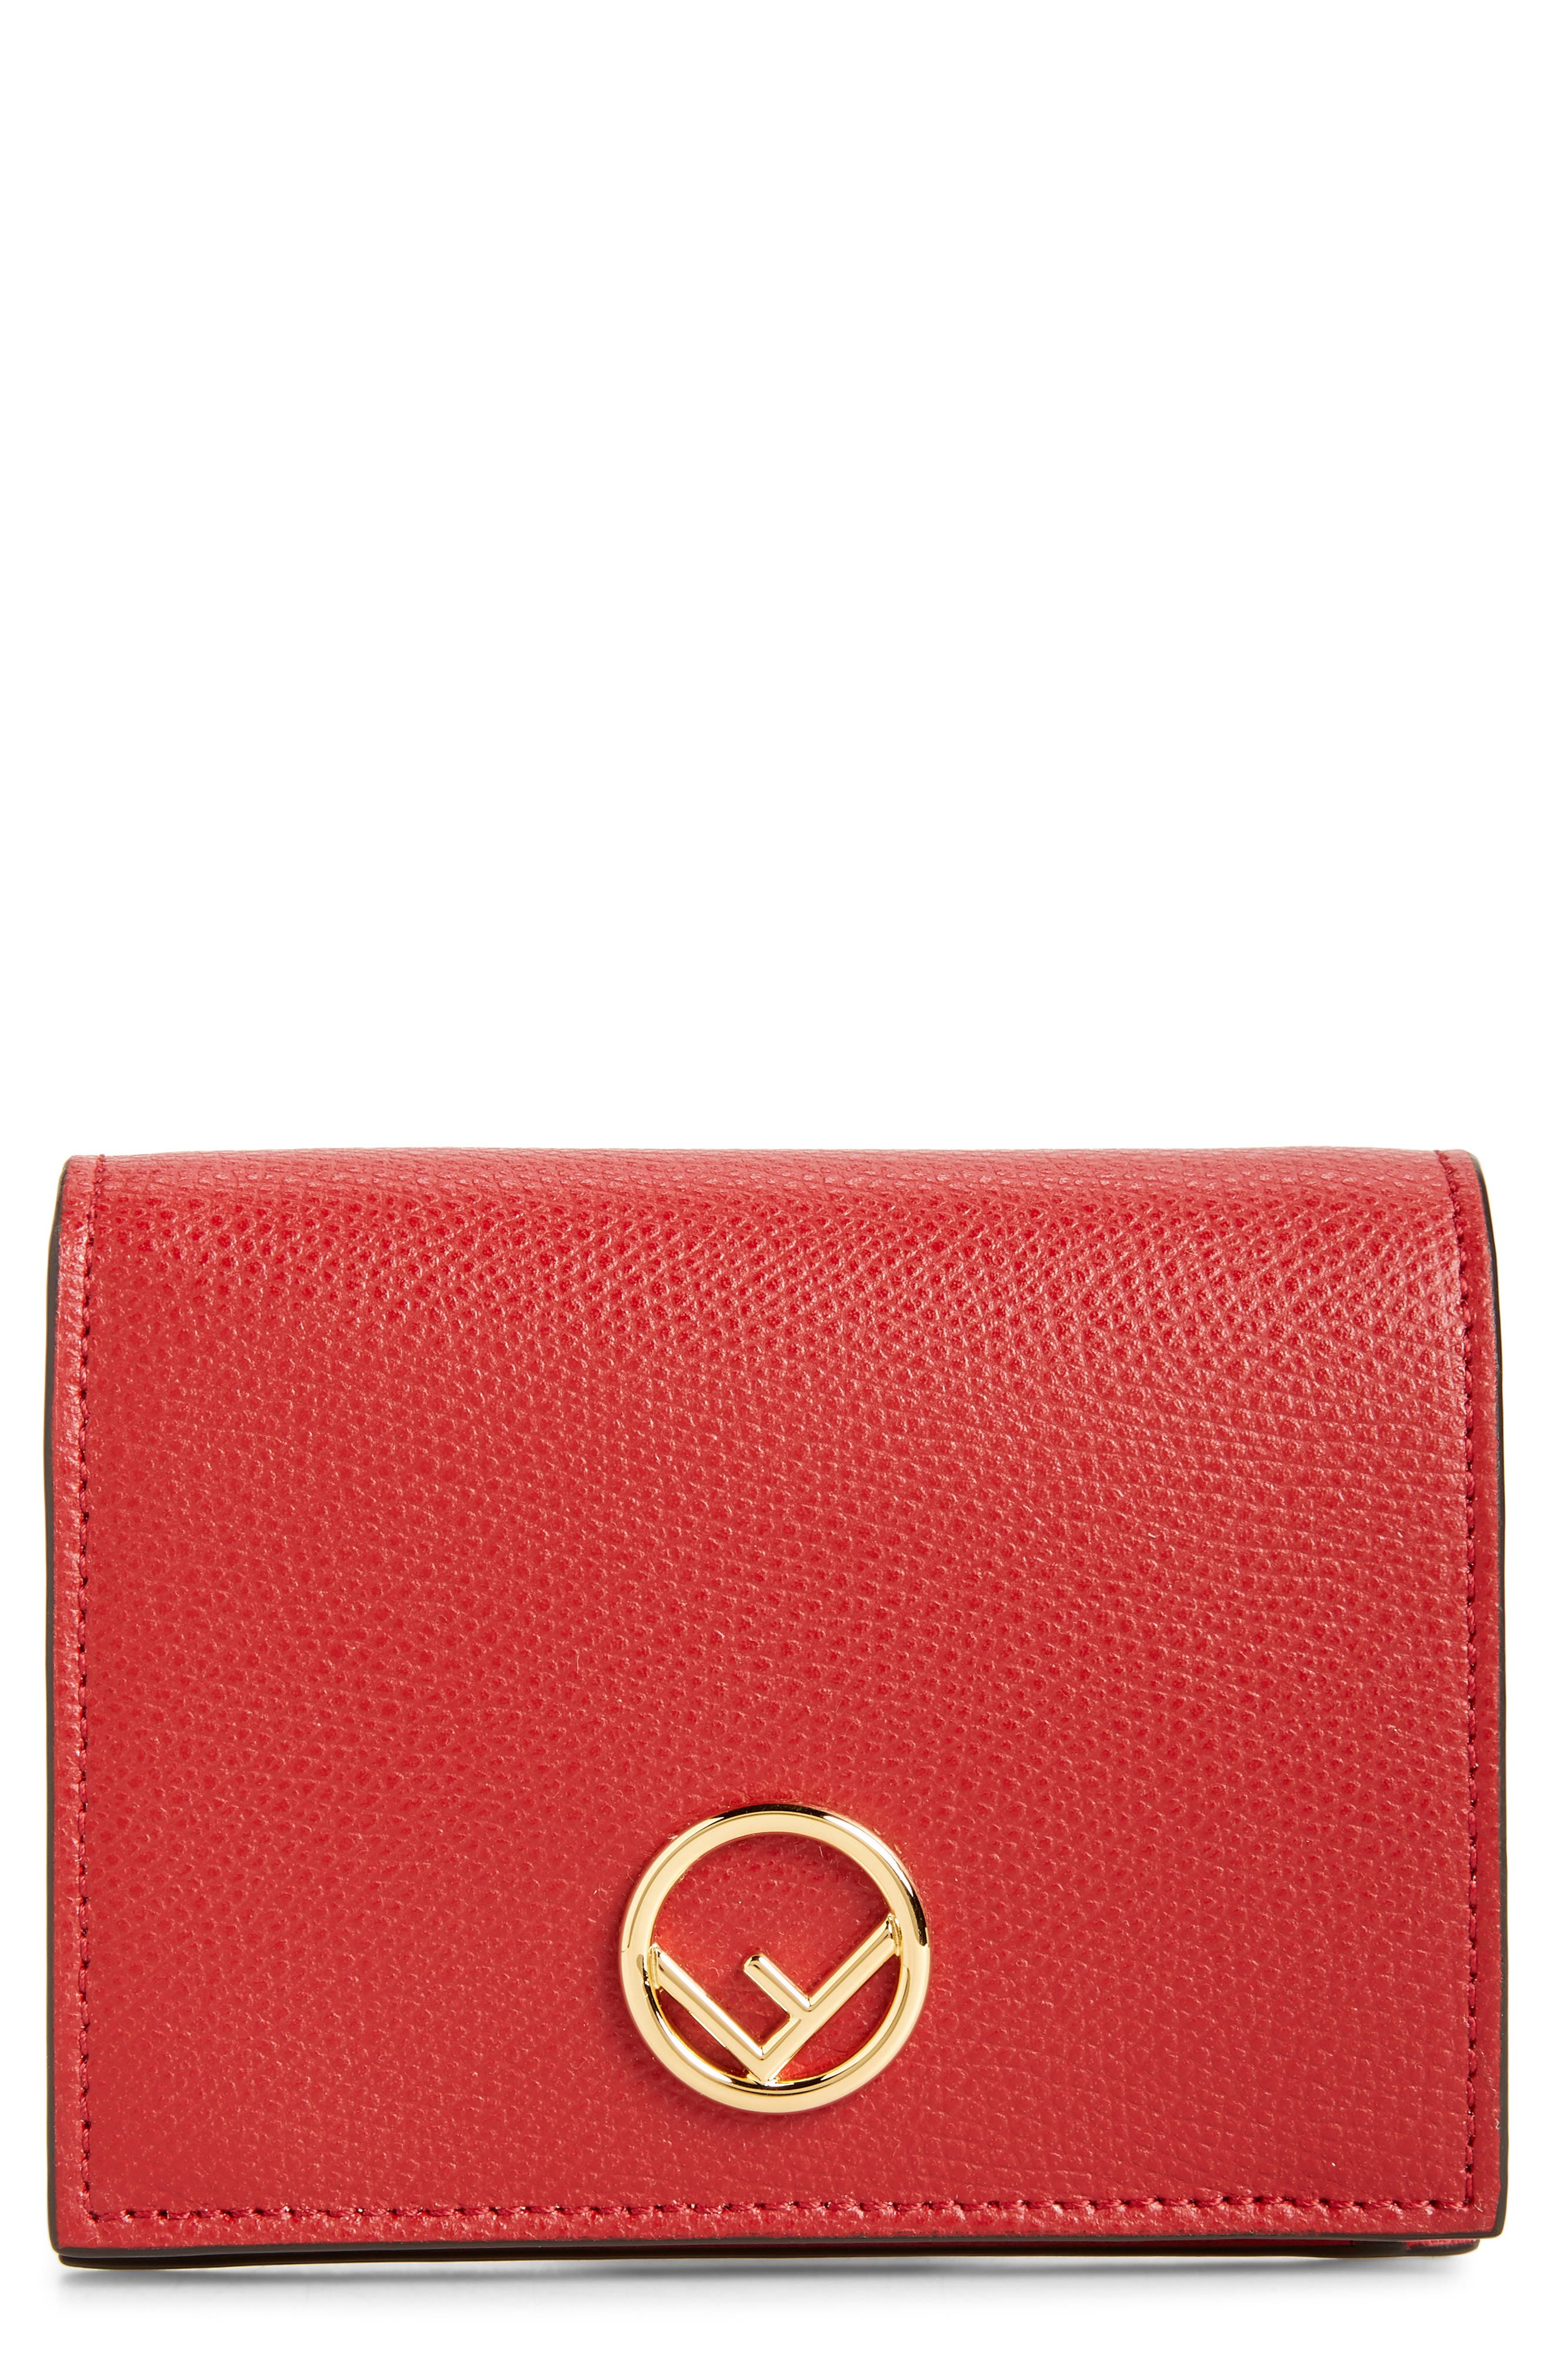 Logo Small Leather French Wallet,                         Main,                         color, FRAGOLA/ ORO SOFT